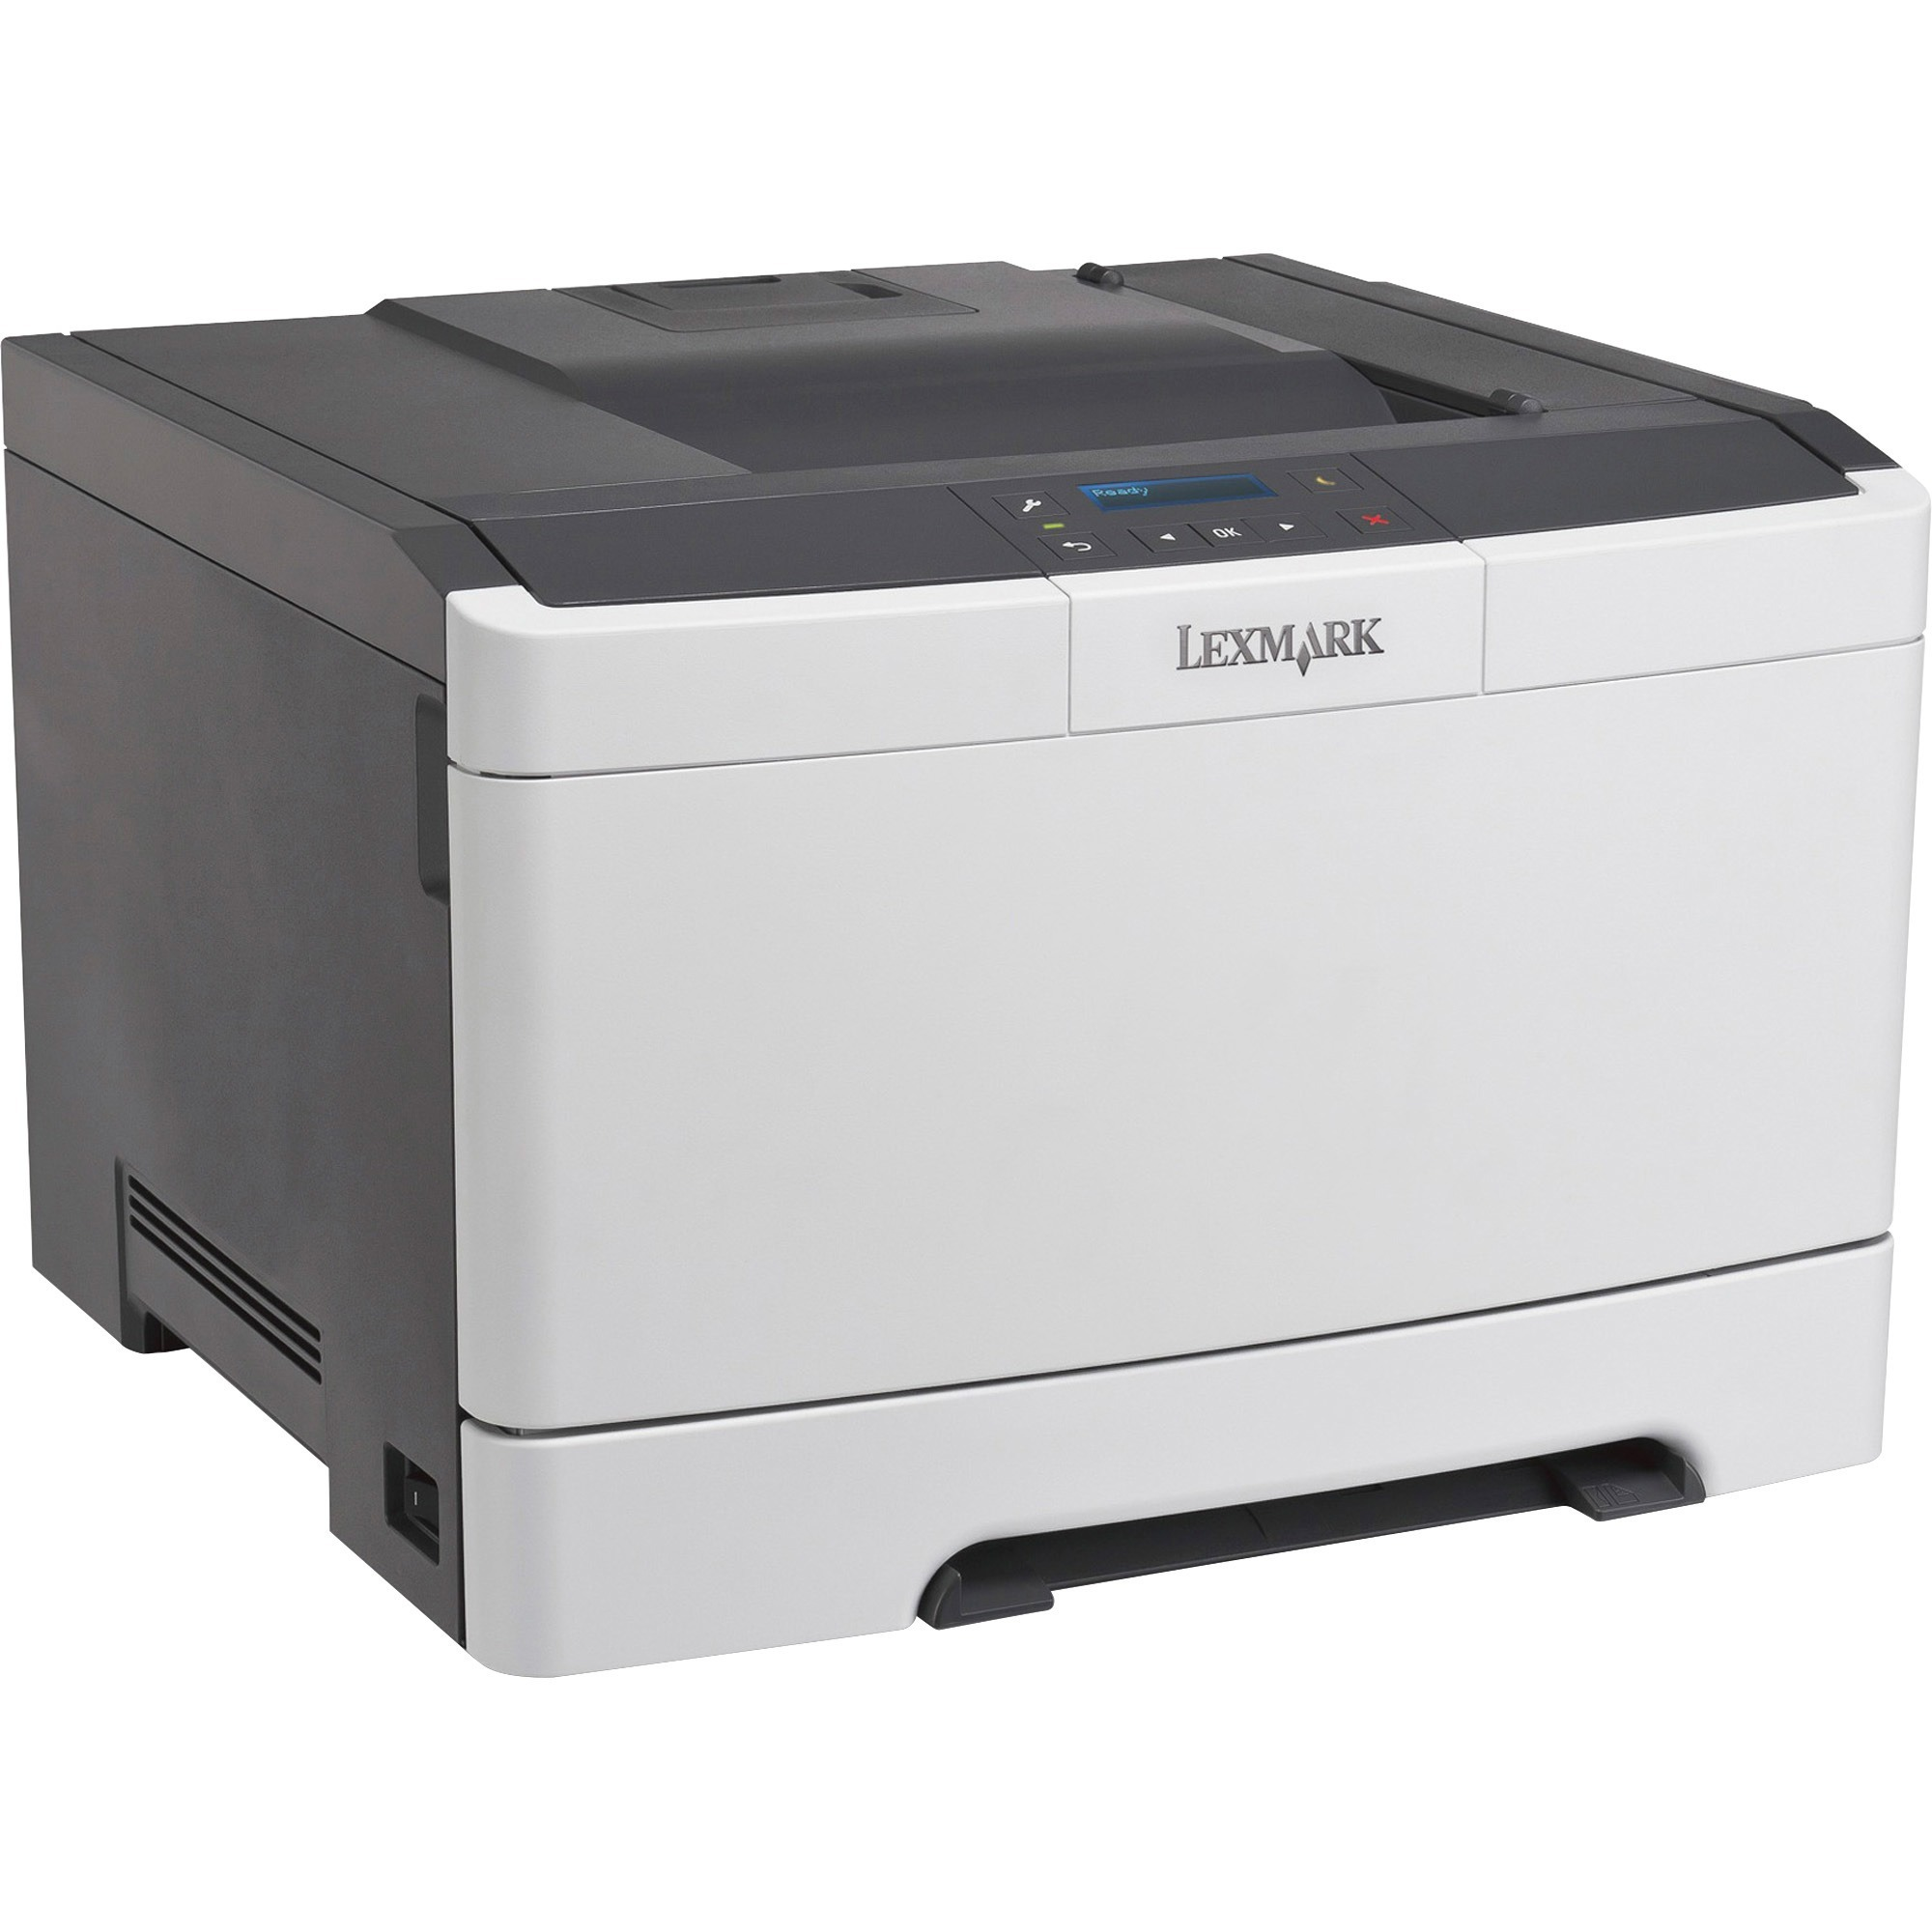 Lexmark CS310DN Laser Printer - Color - 2400 x 600 dpi Print - Plain Paper Print - Desktop, Black, White